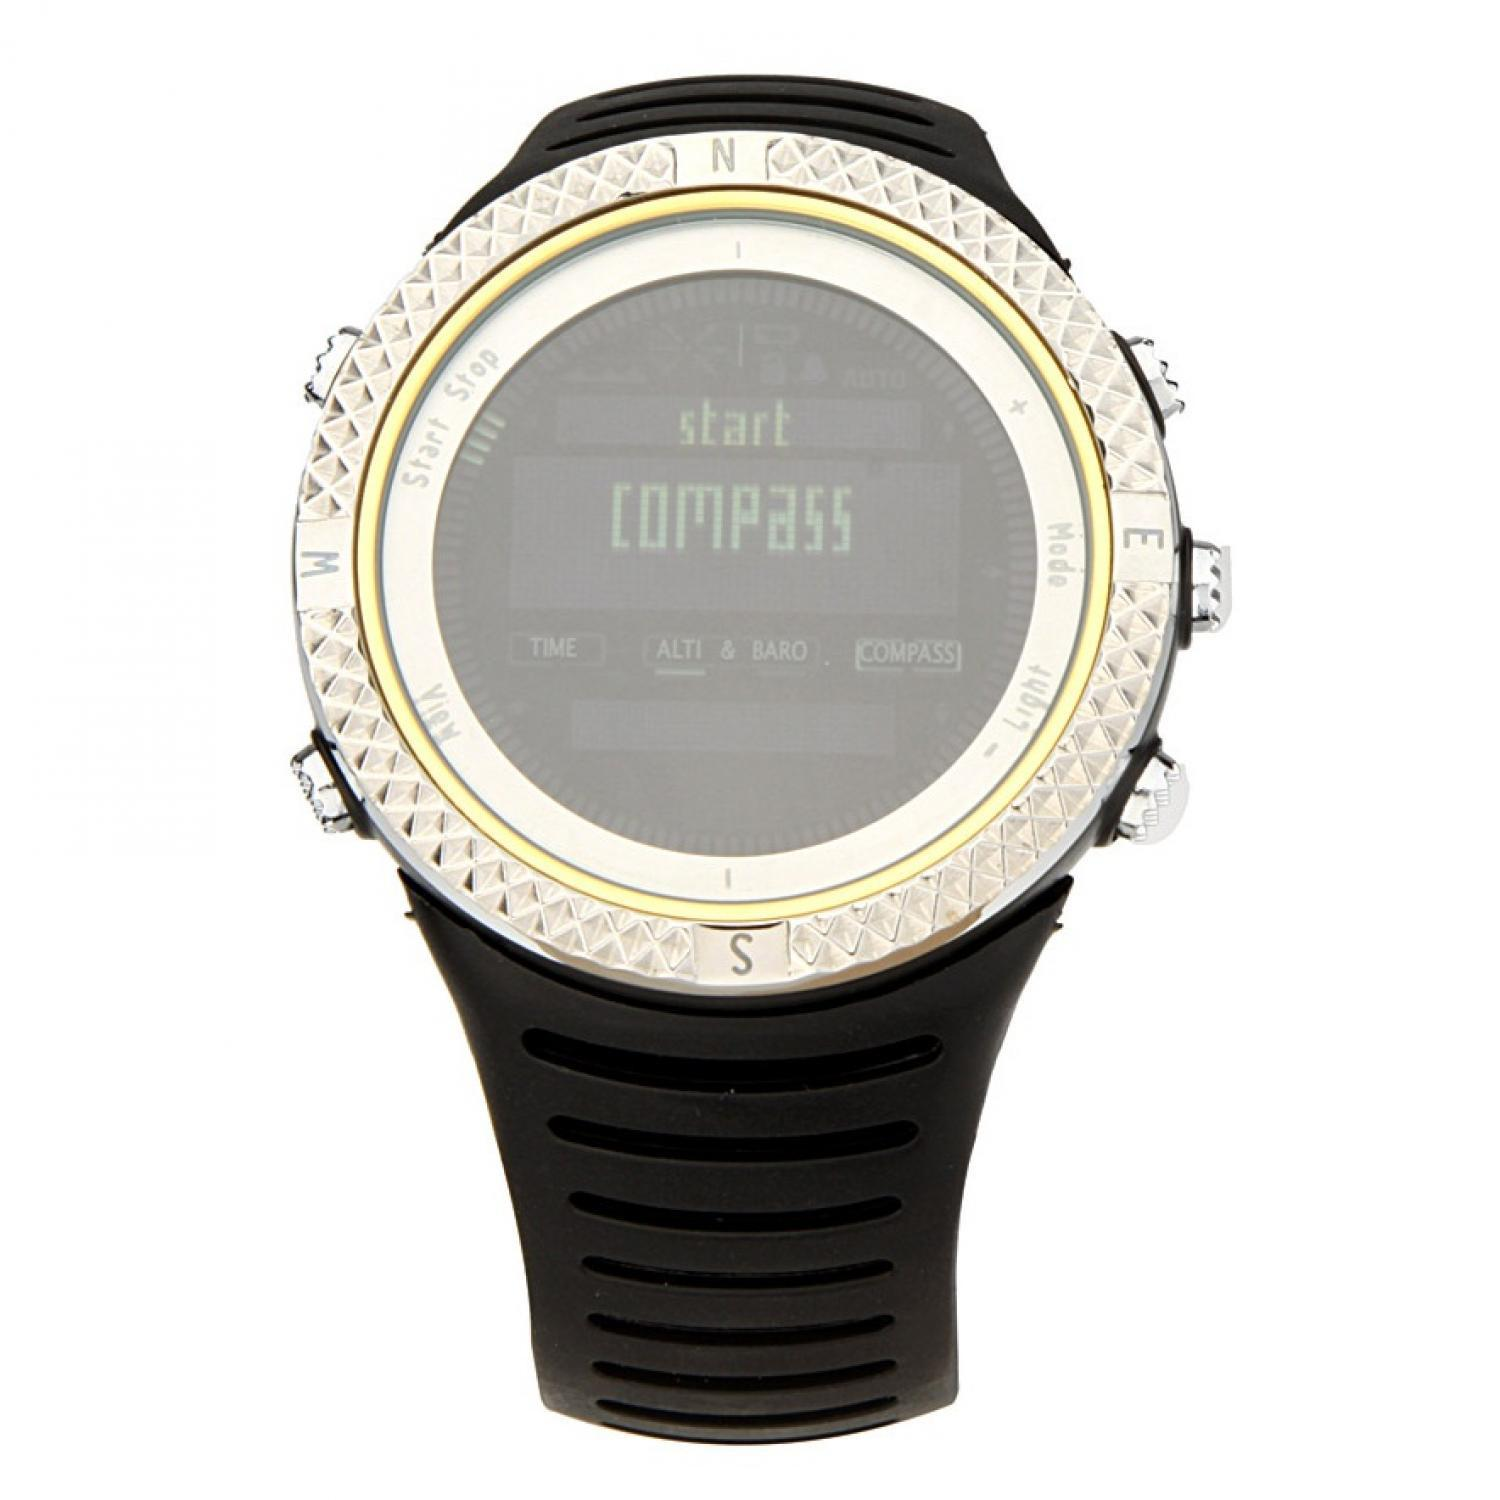 Spovan FX801 Waterproof Sport Watch for Outdoor Traveling / Jam Tangan Olahraga Terbaru / Jam Tangan Keren Murah